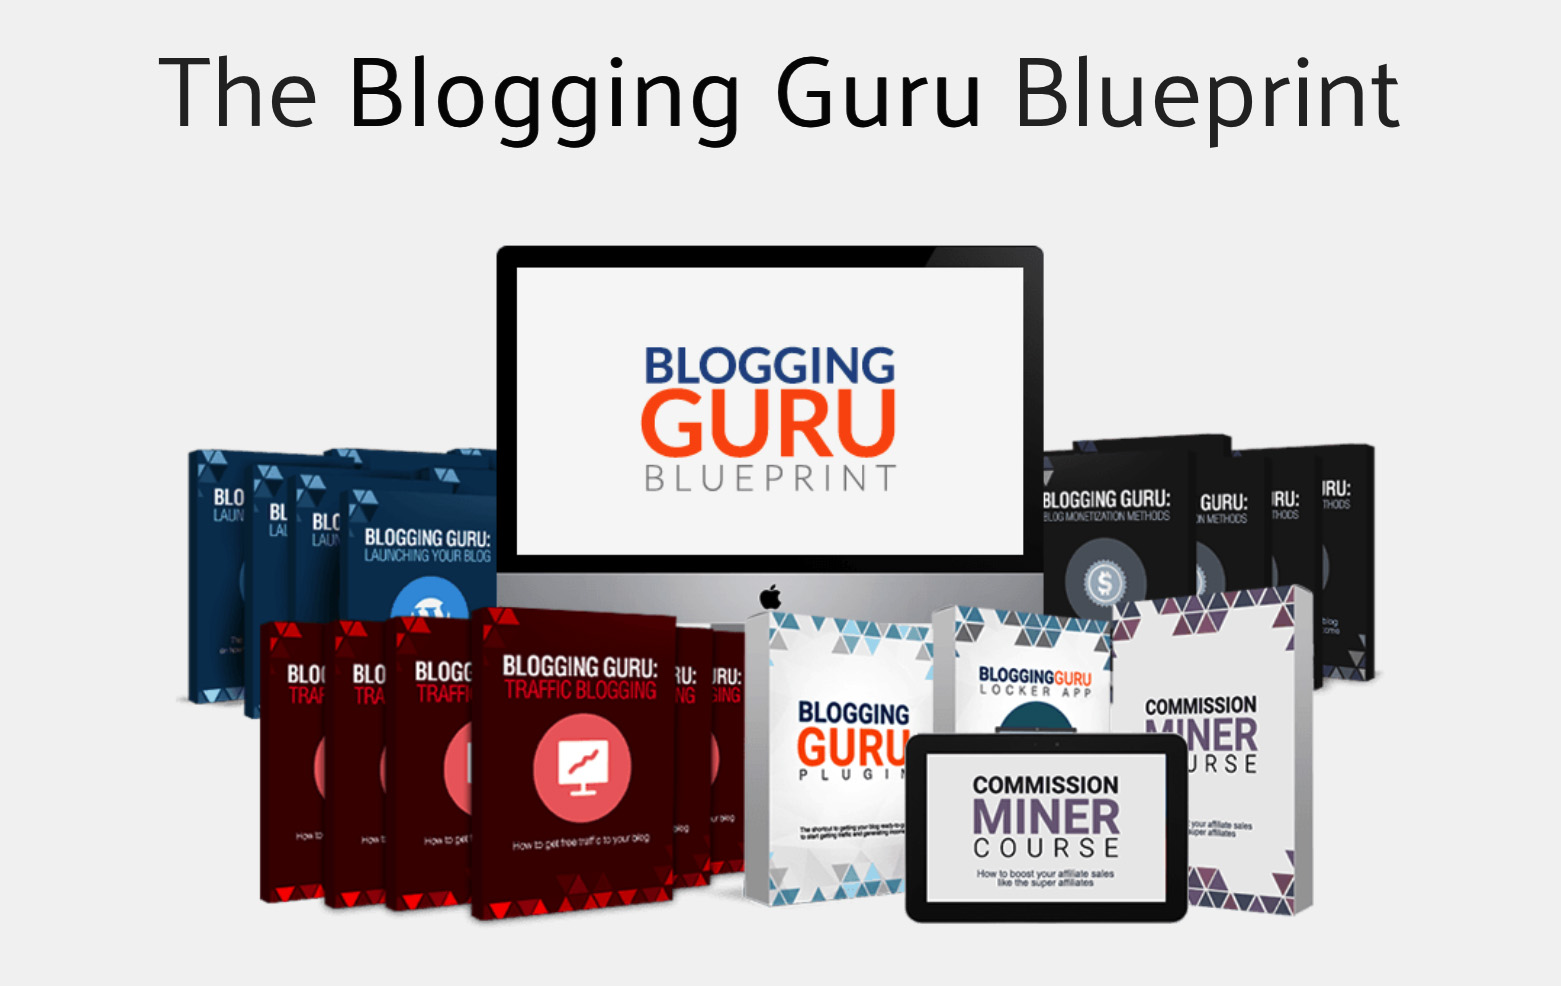 Blogging Guru Blueprint | The Most Powerful Blogging Course